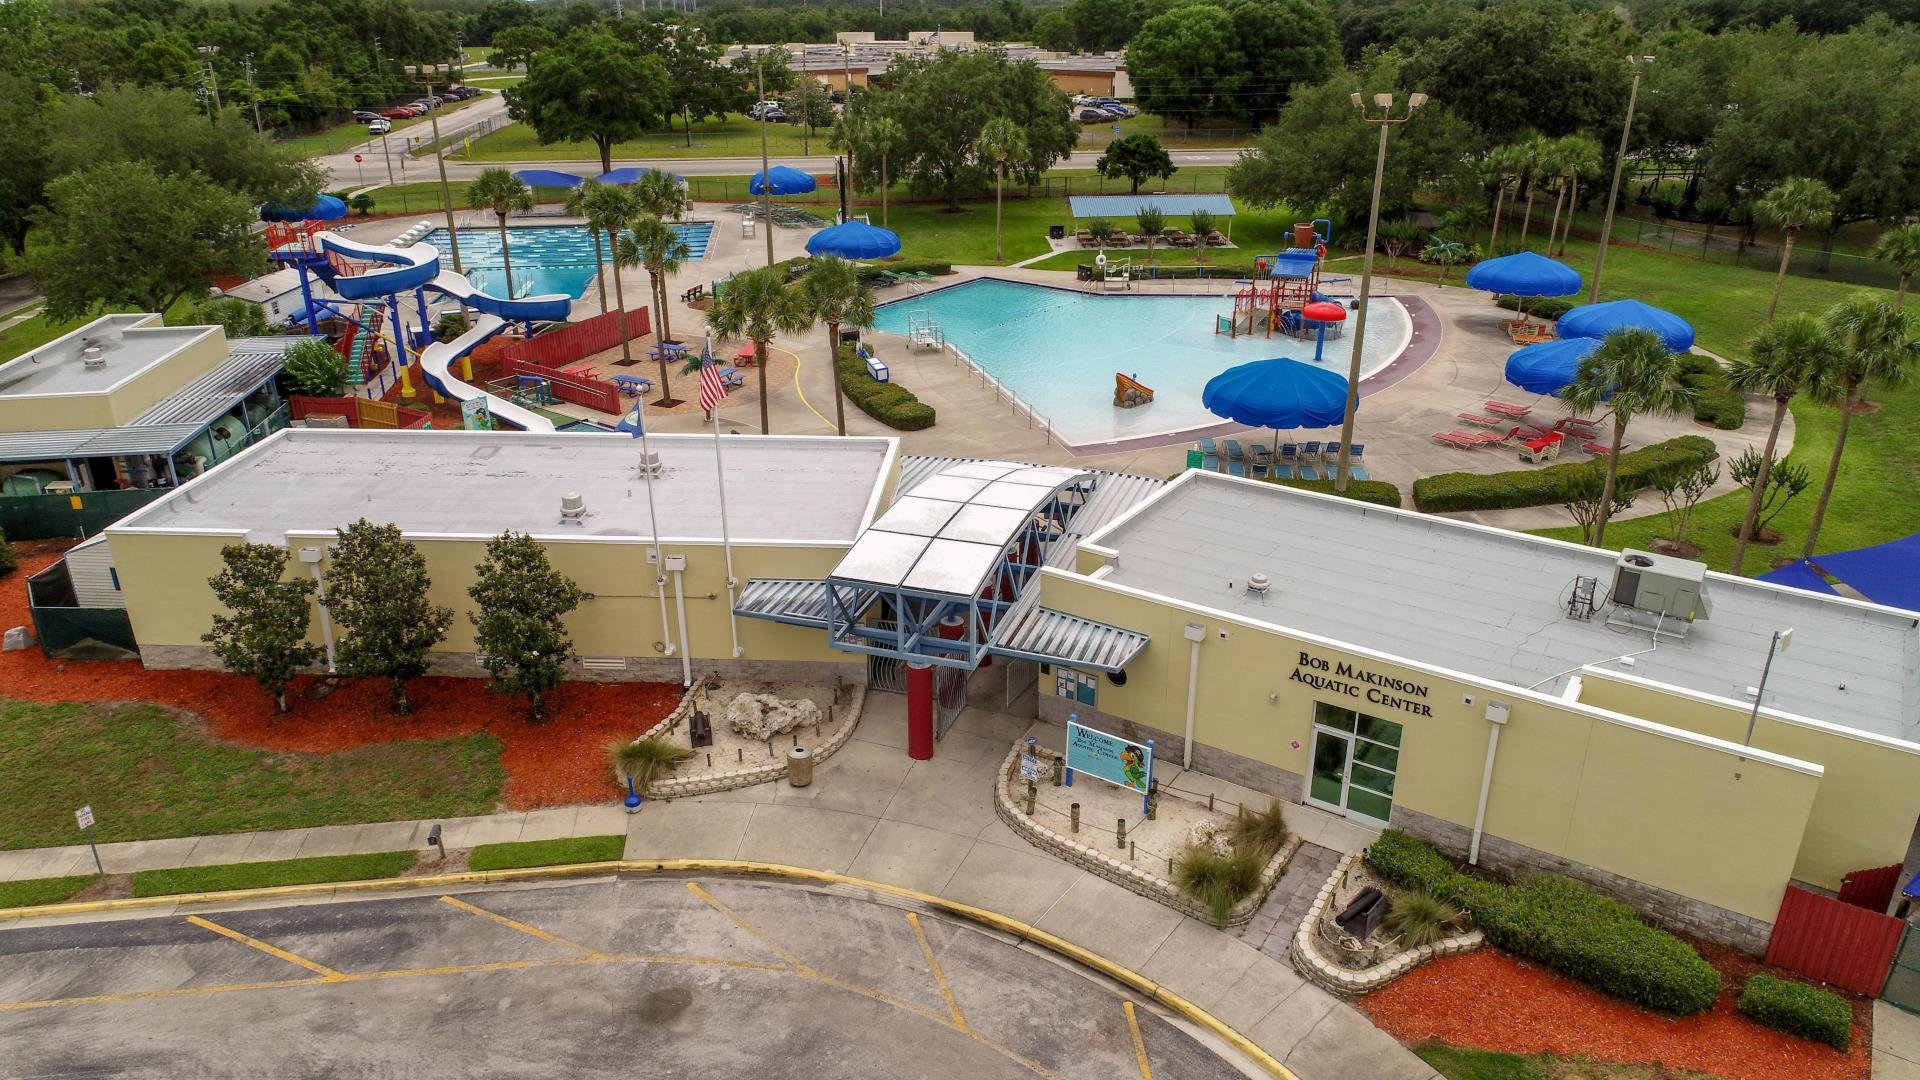 Bob Makinson Aquatic Center City of Kissimmee front